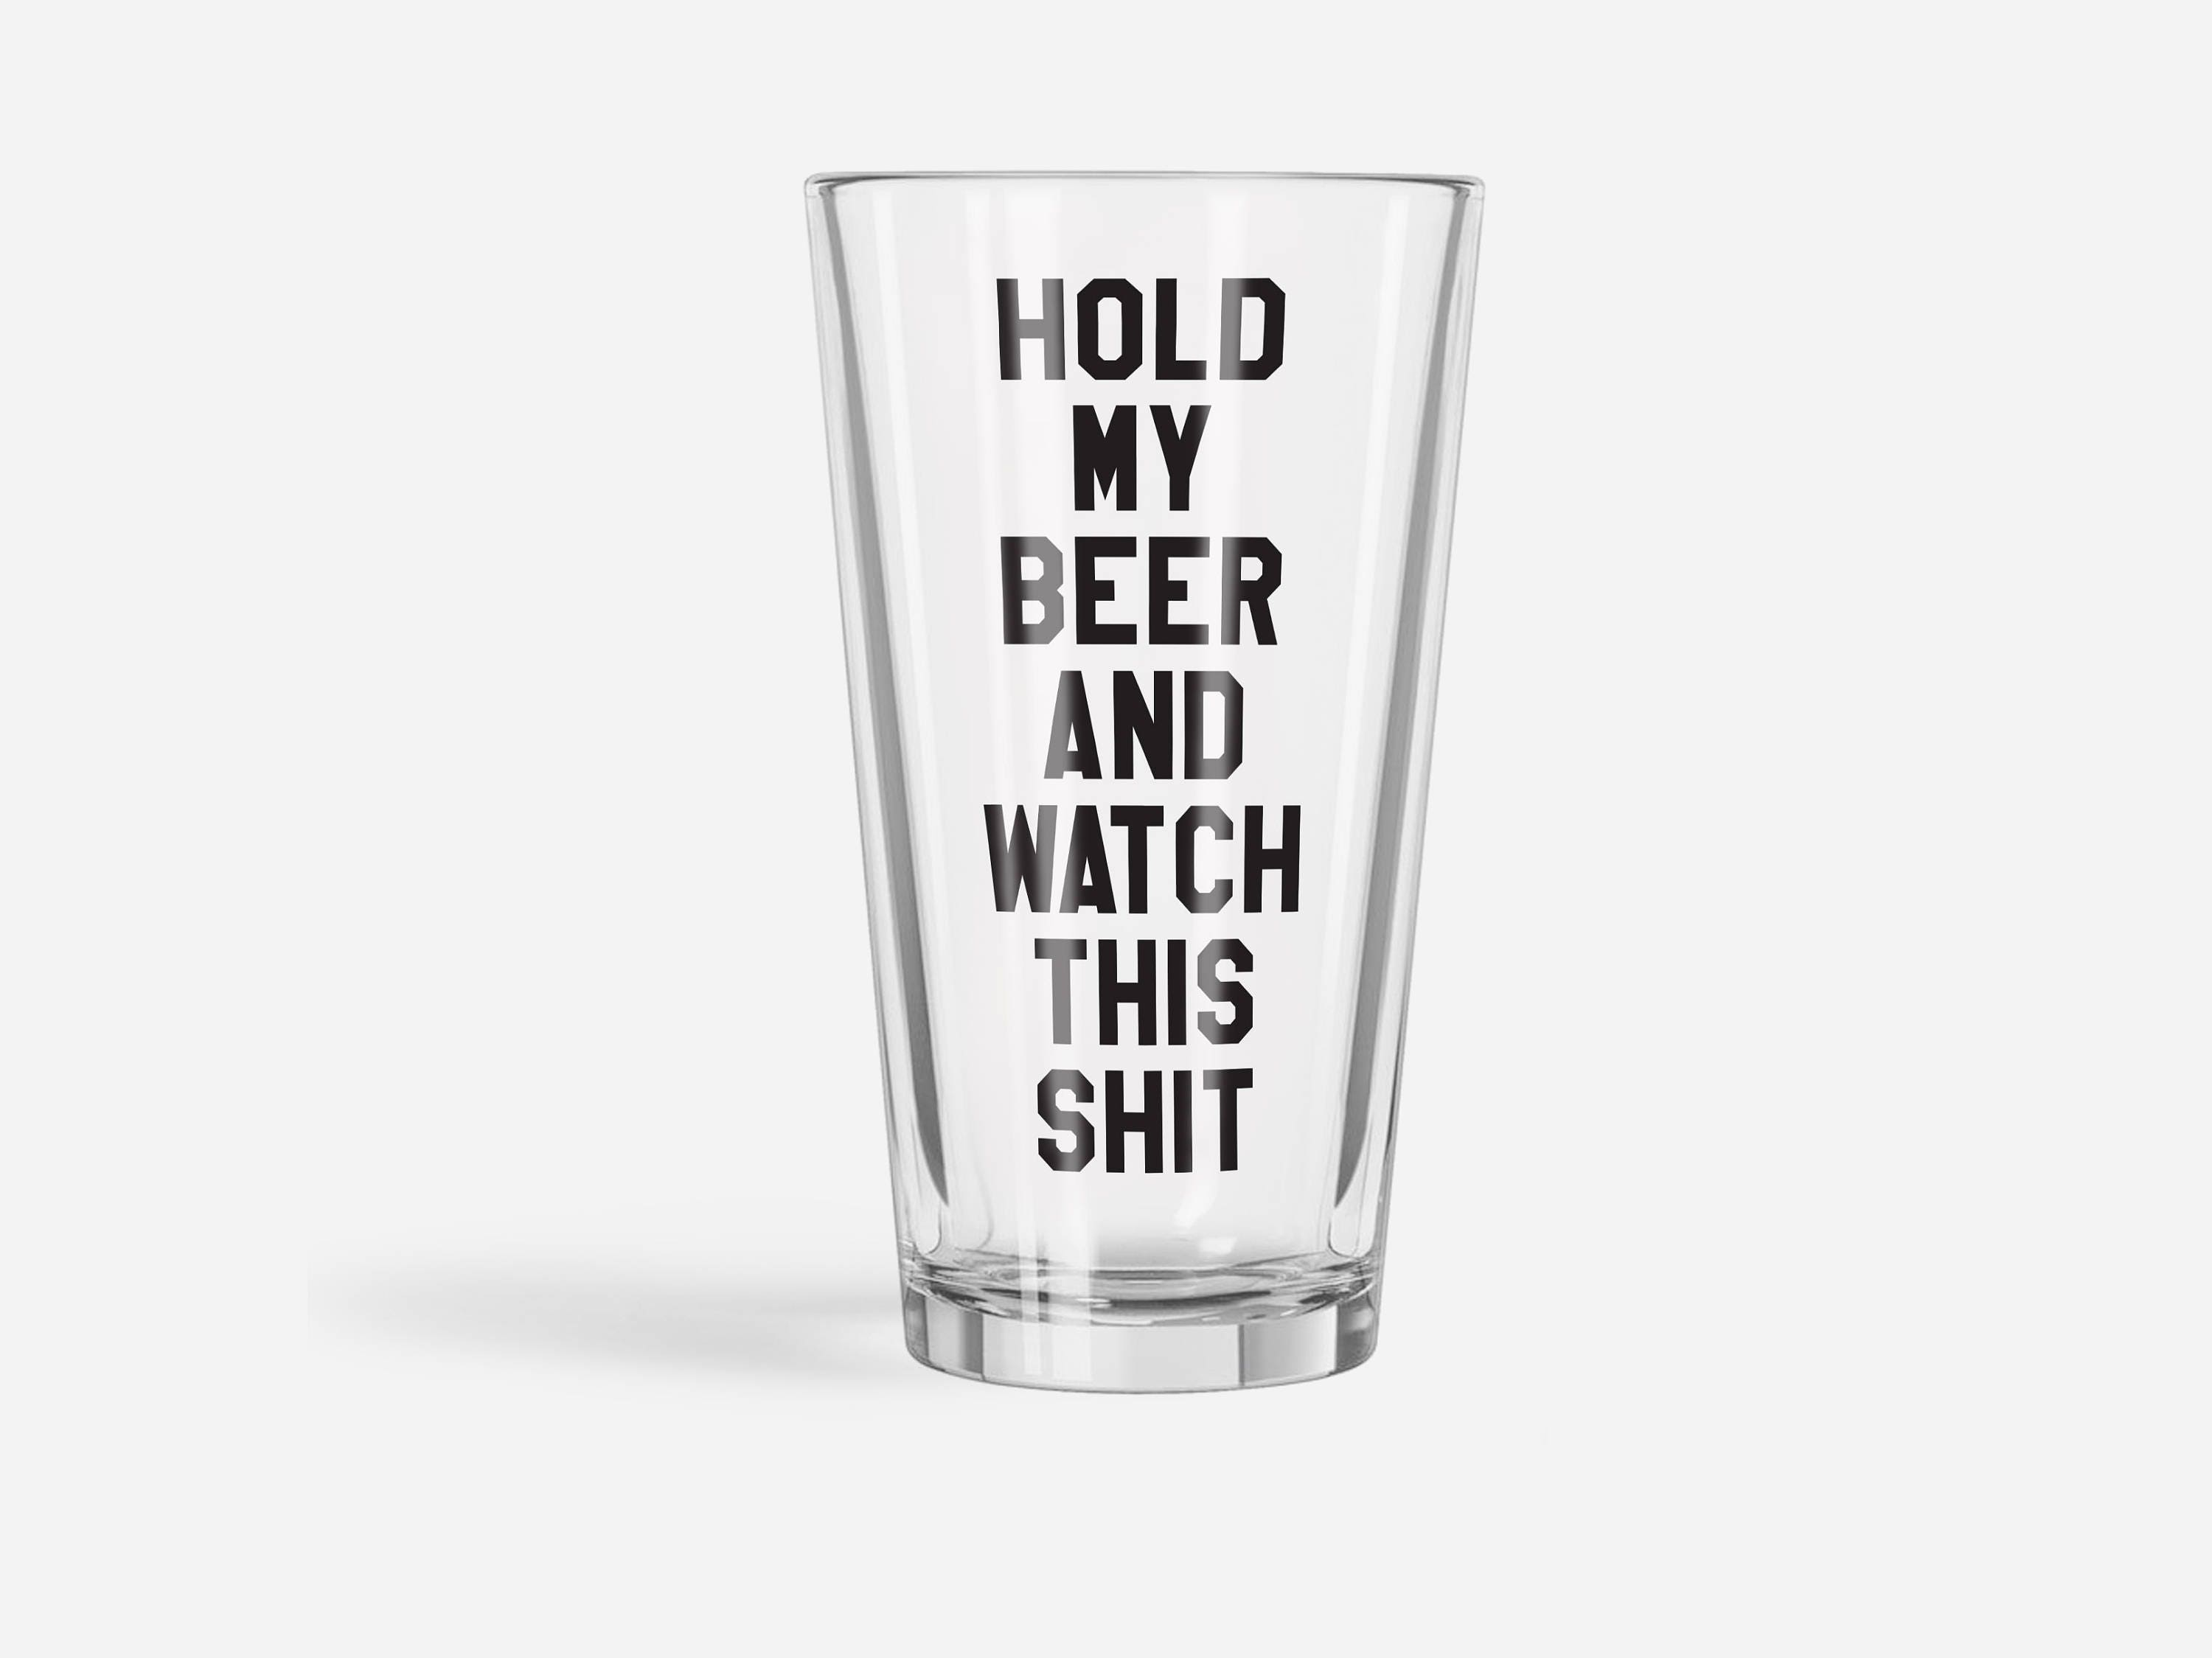 hold my beer and watch this shit pint glass u003e funny beer glass u003e funny drinking gift u003e pint glasses u003e funny gift u003e birthday gift